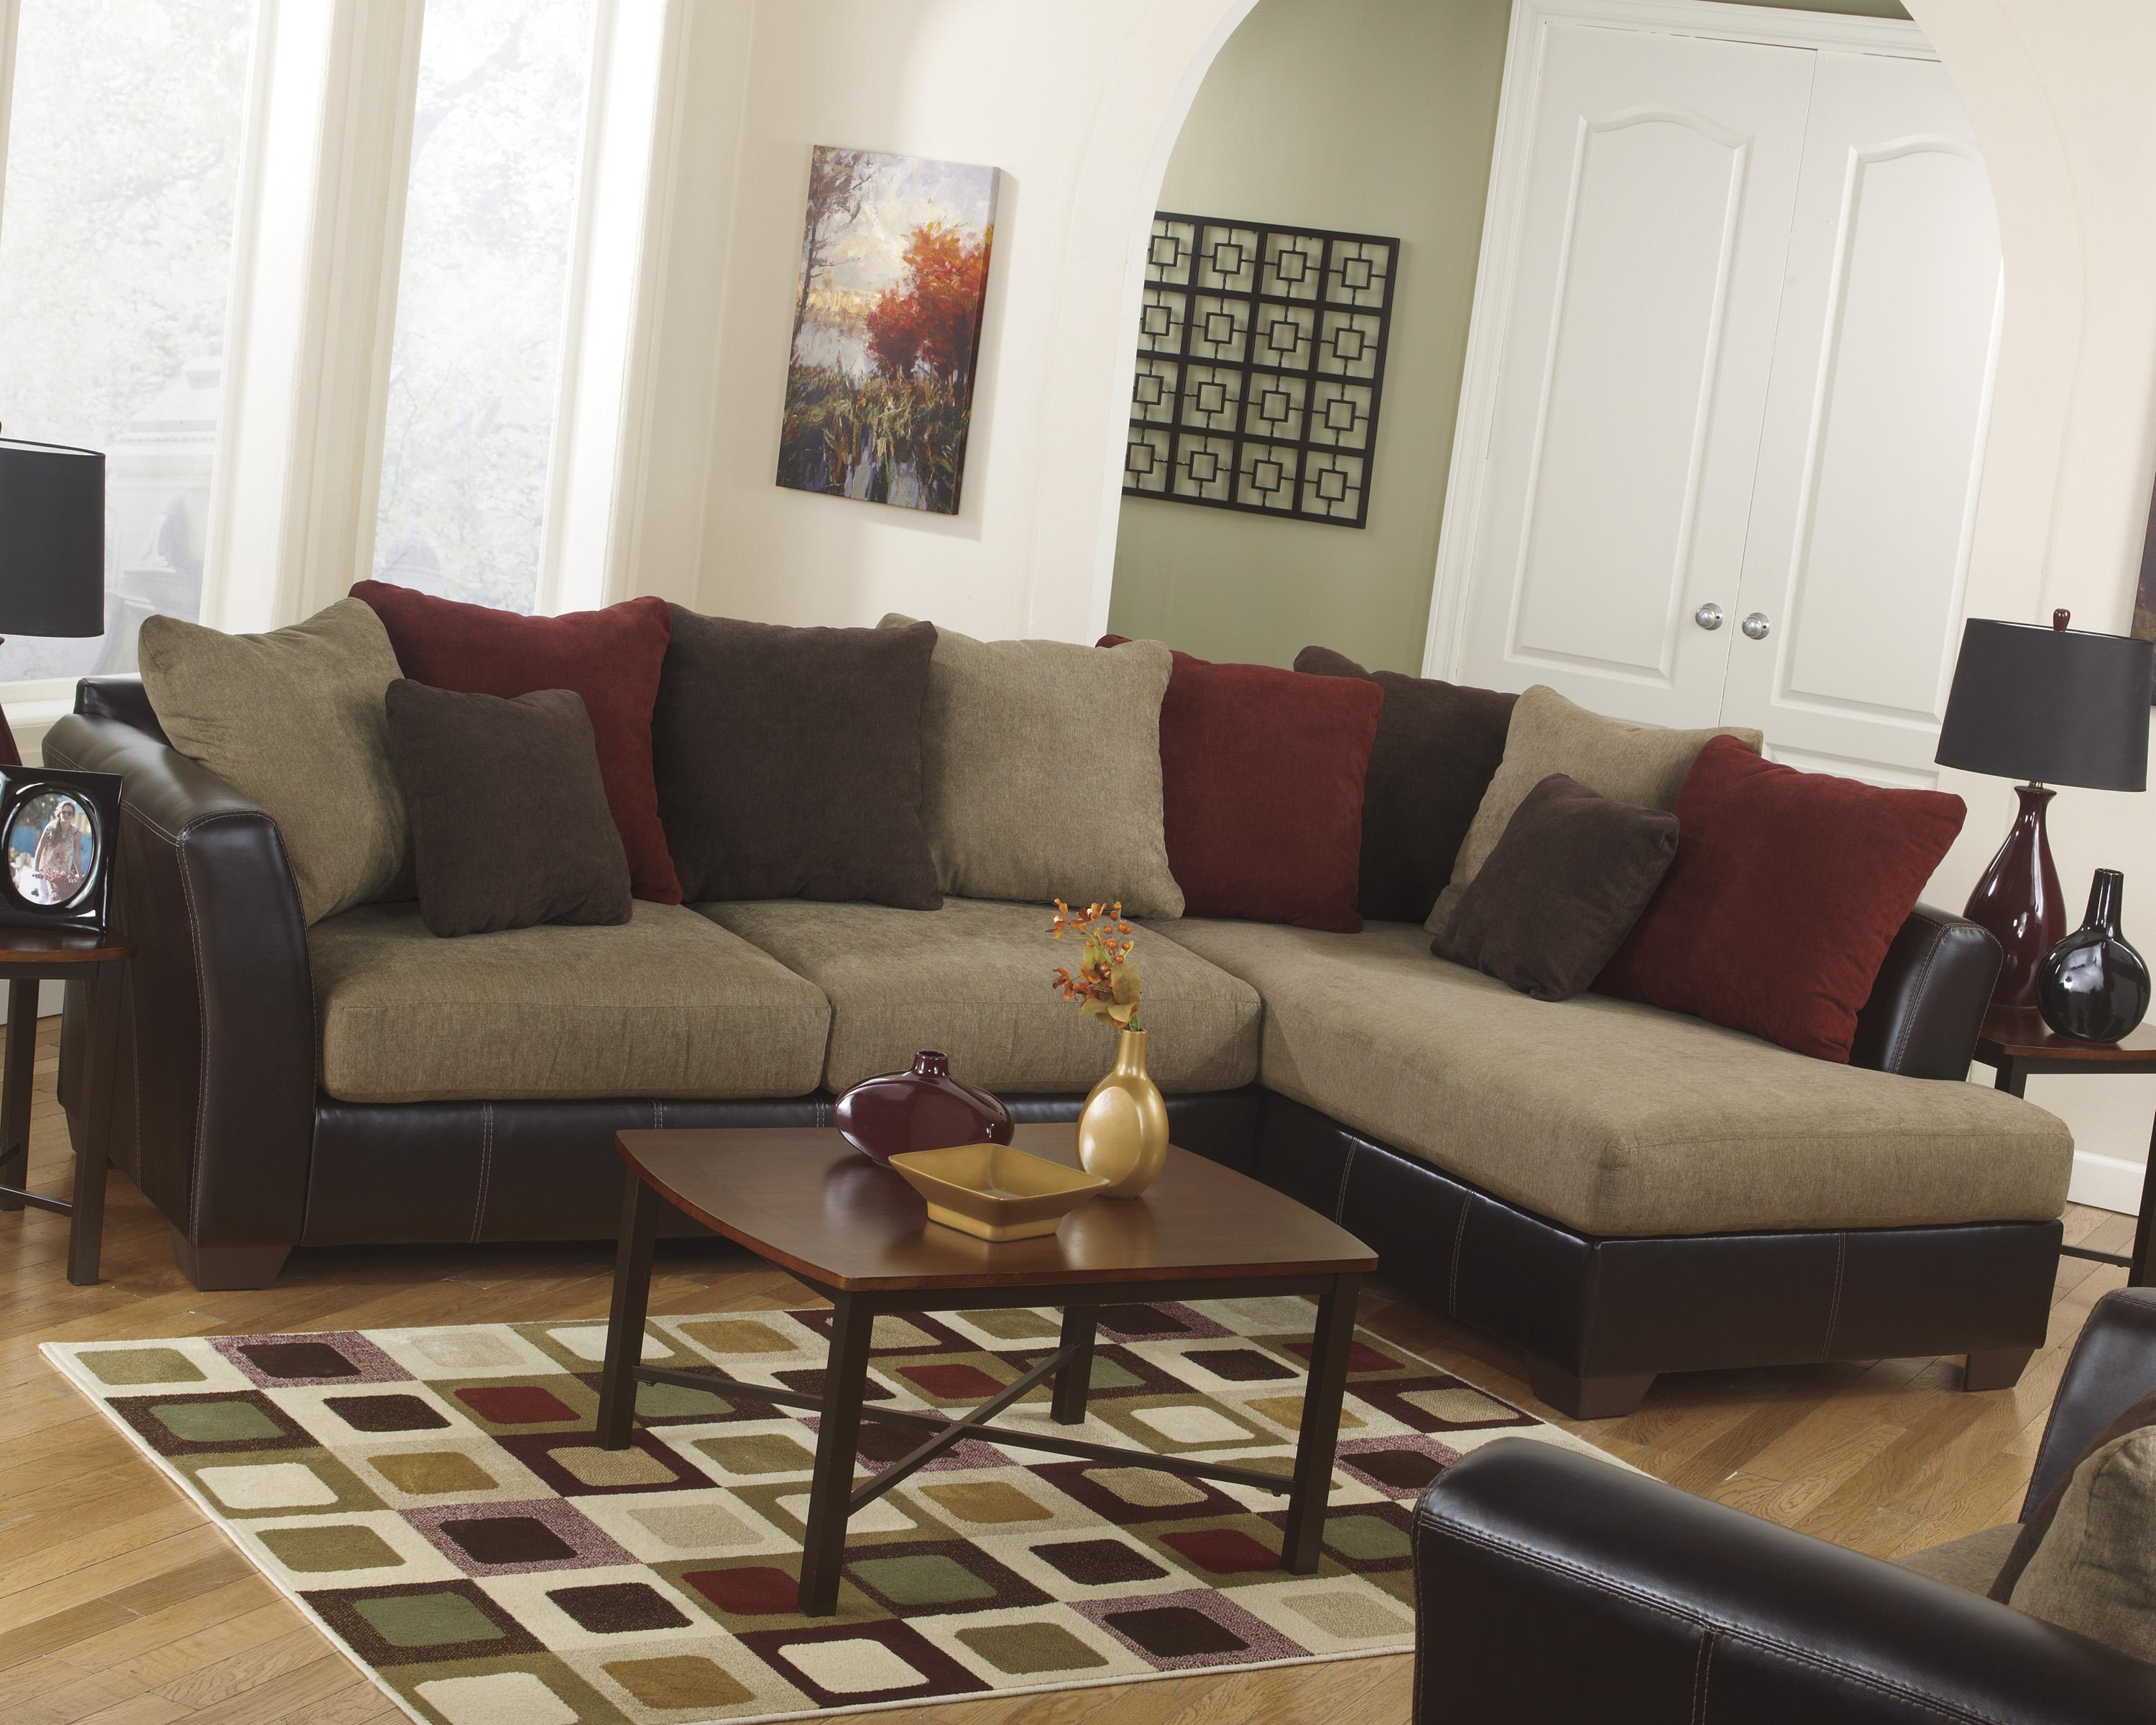 Ashley Furniture Sanya - Mocha Stationary Living Room Group - Item Number: 28400 Living Room Group 5